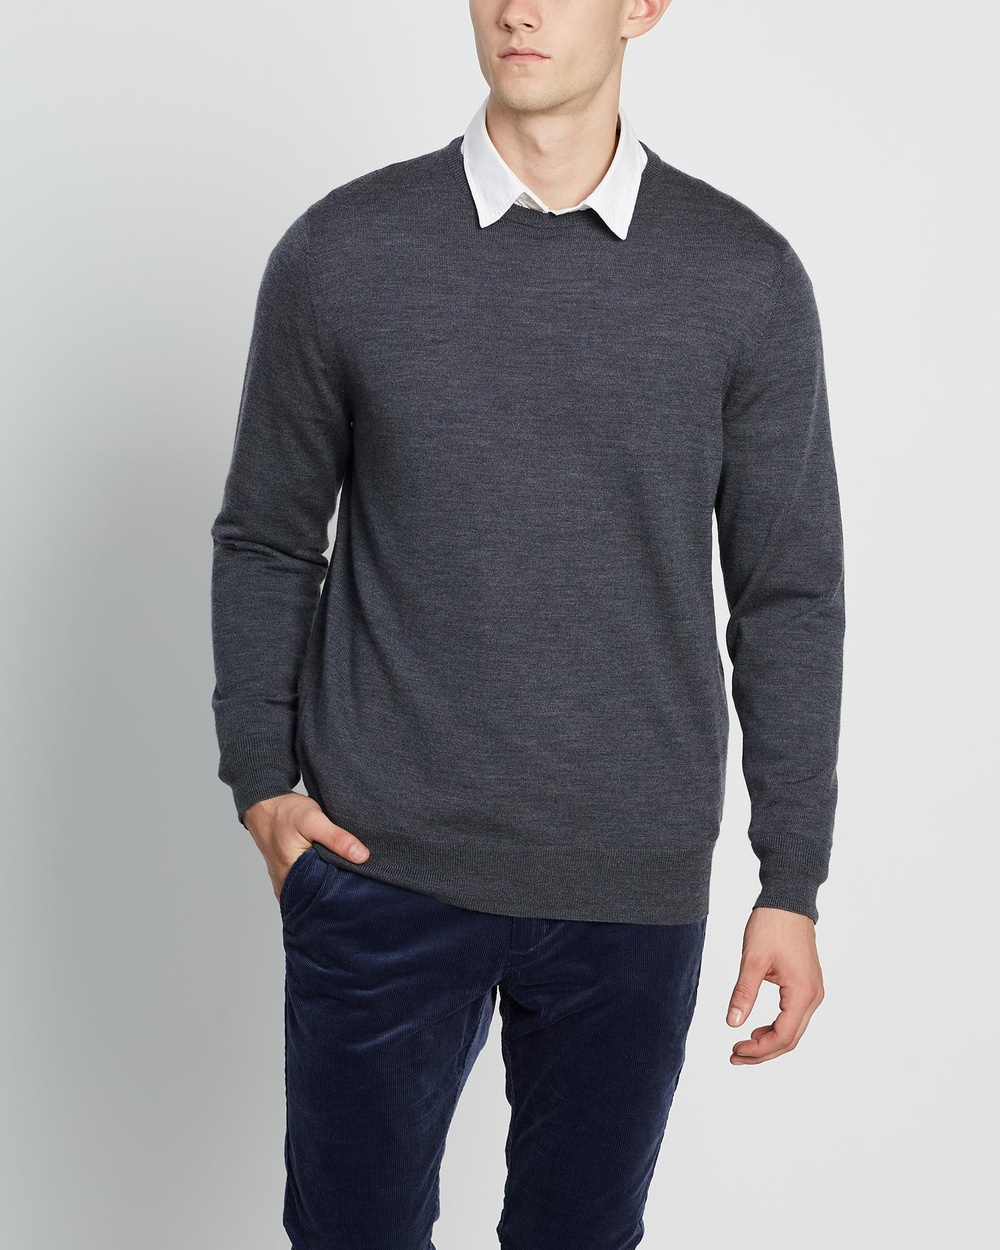 3 Wise Men The Hunter Merino Knit Jumpers & Cardigans Charcoal